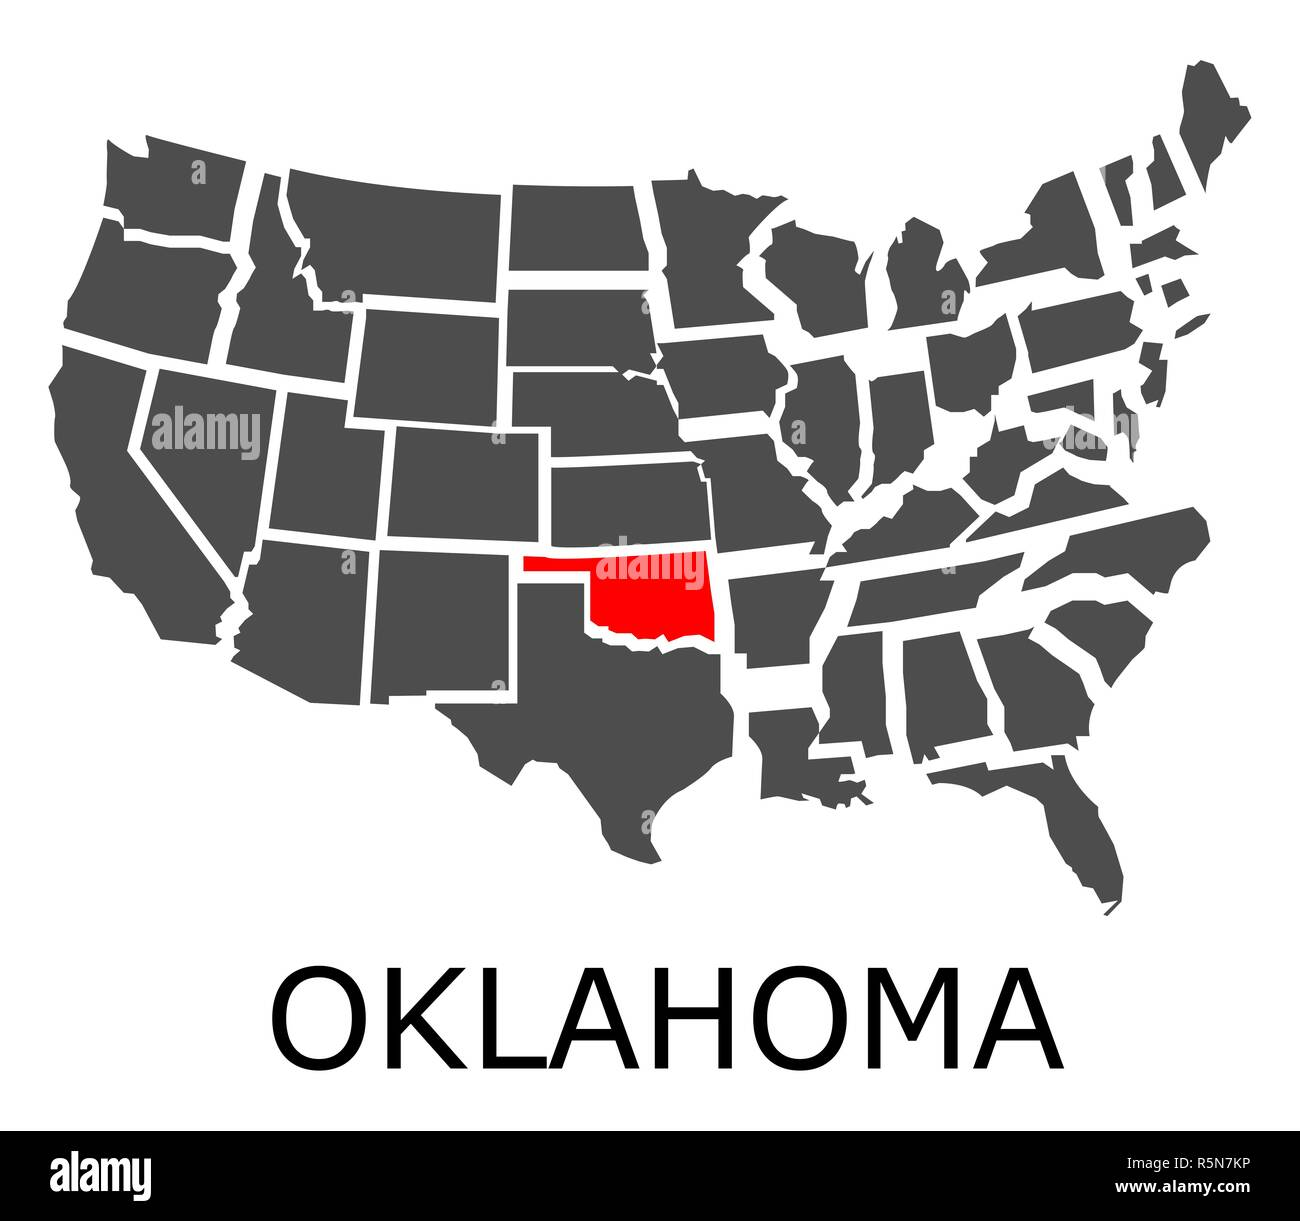 Oklahoma Map In Usa.State Of Oklahoma On Map Of Usa Stock Photo 227275098 Alamy